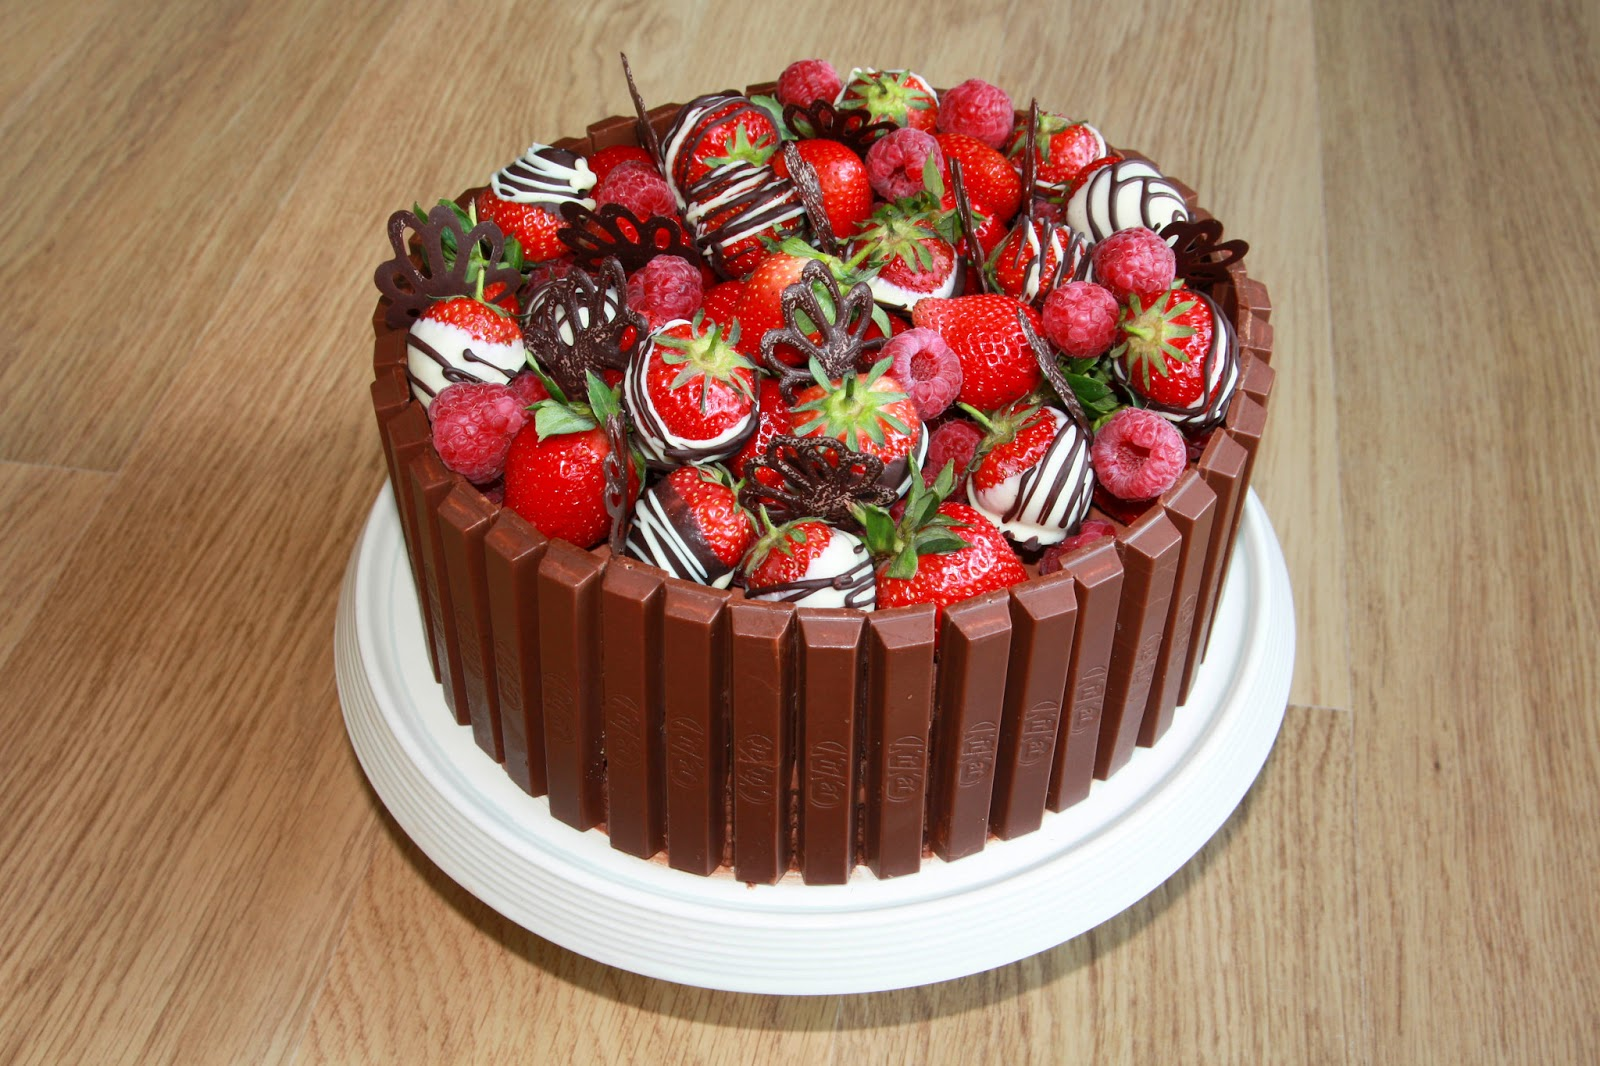 Chocolate And Raspberry Gateau Topped With Raspberries Dipped Strawberries